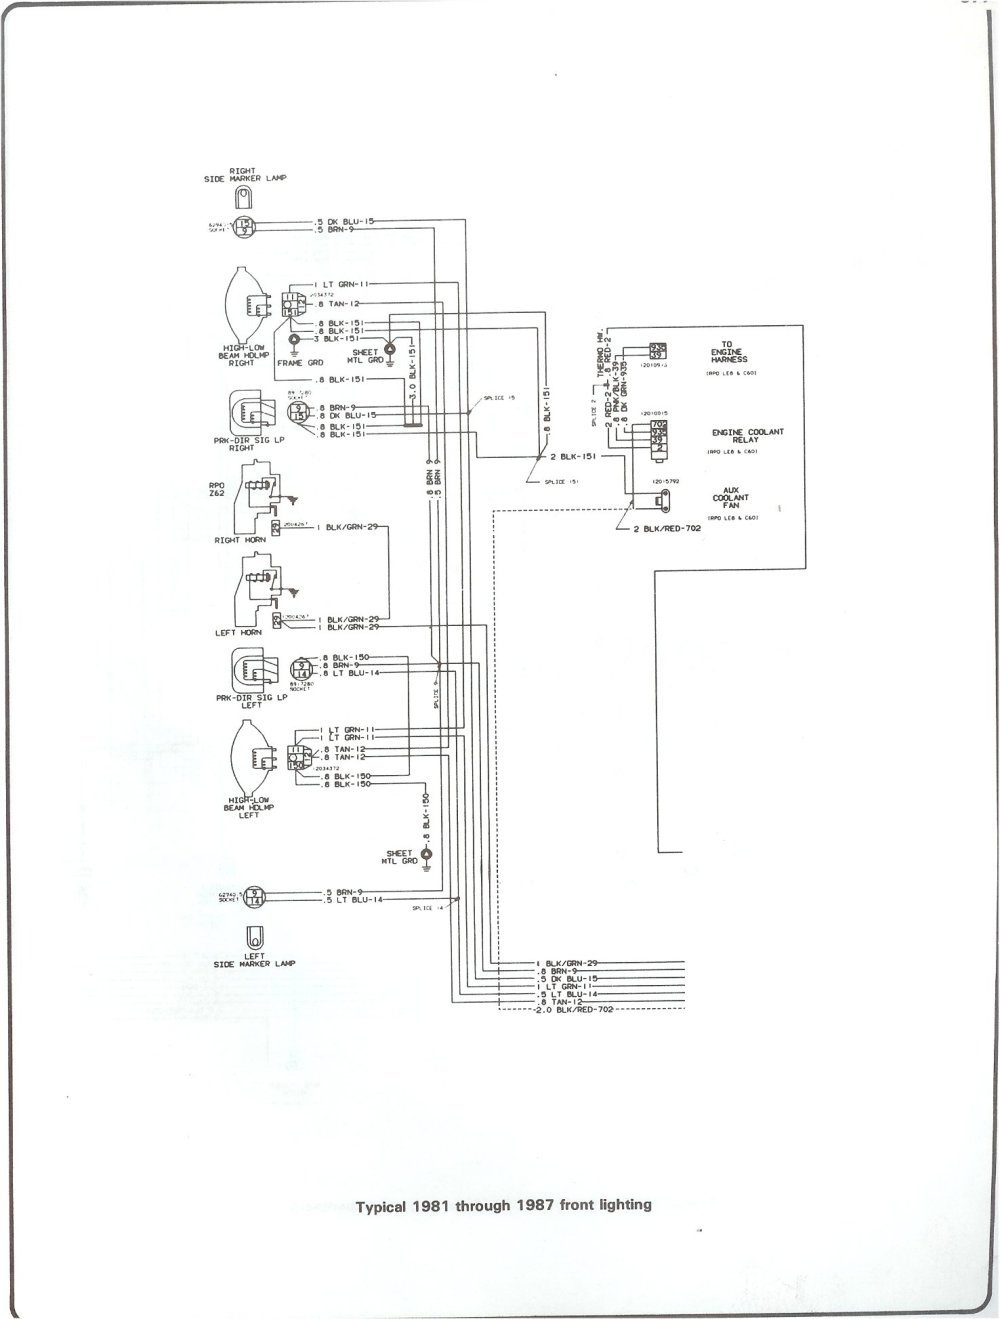 medium resolution of 81 87 front lighting complete 73 87 wiring diagrams